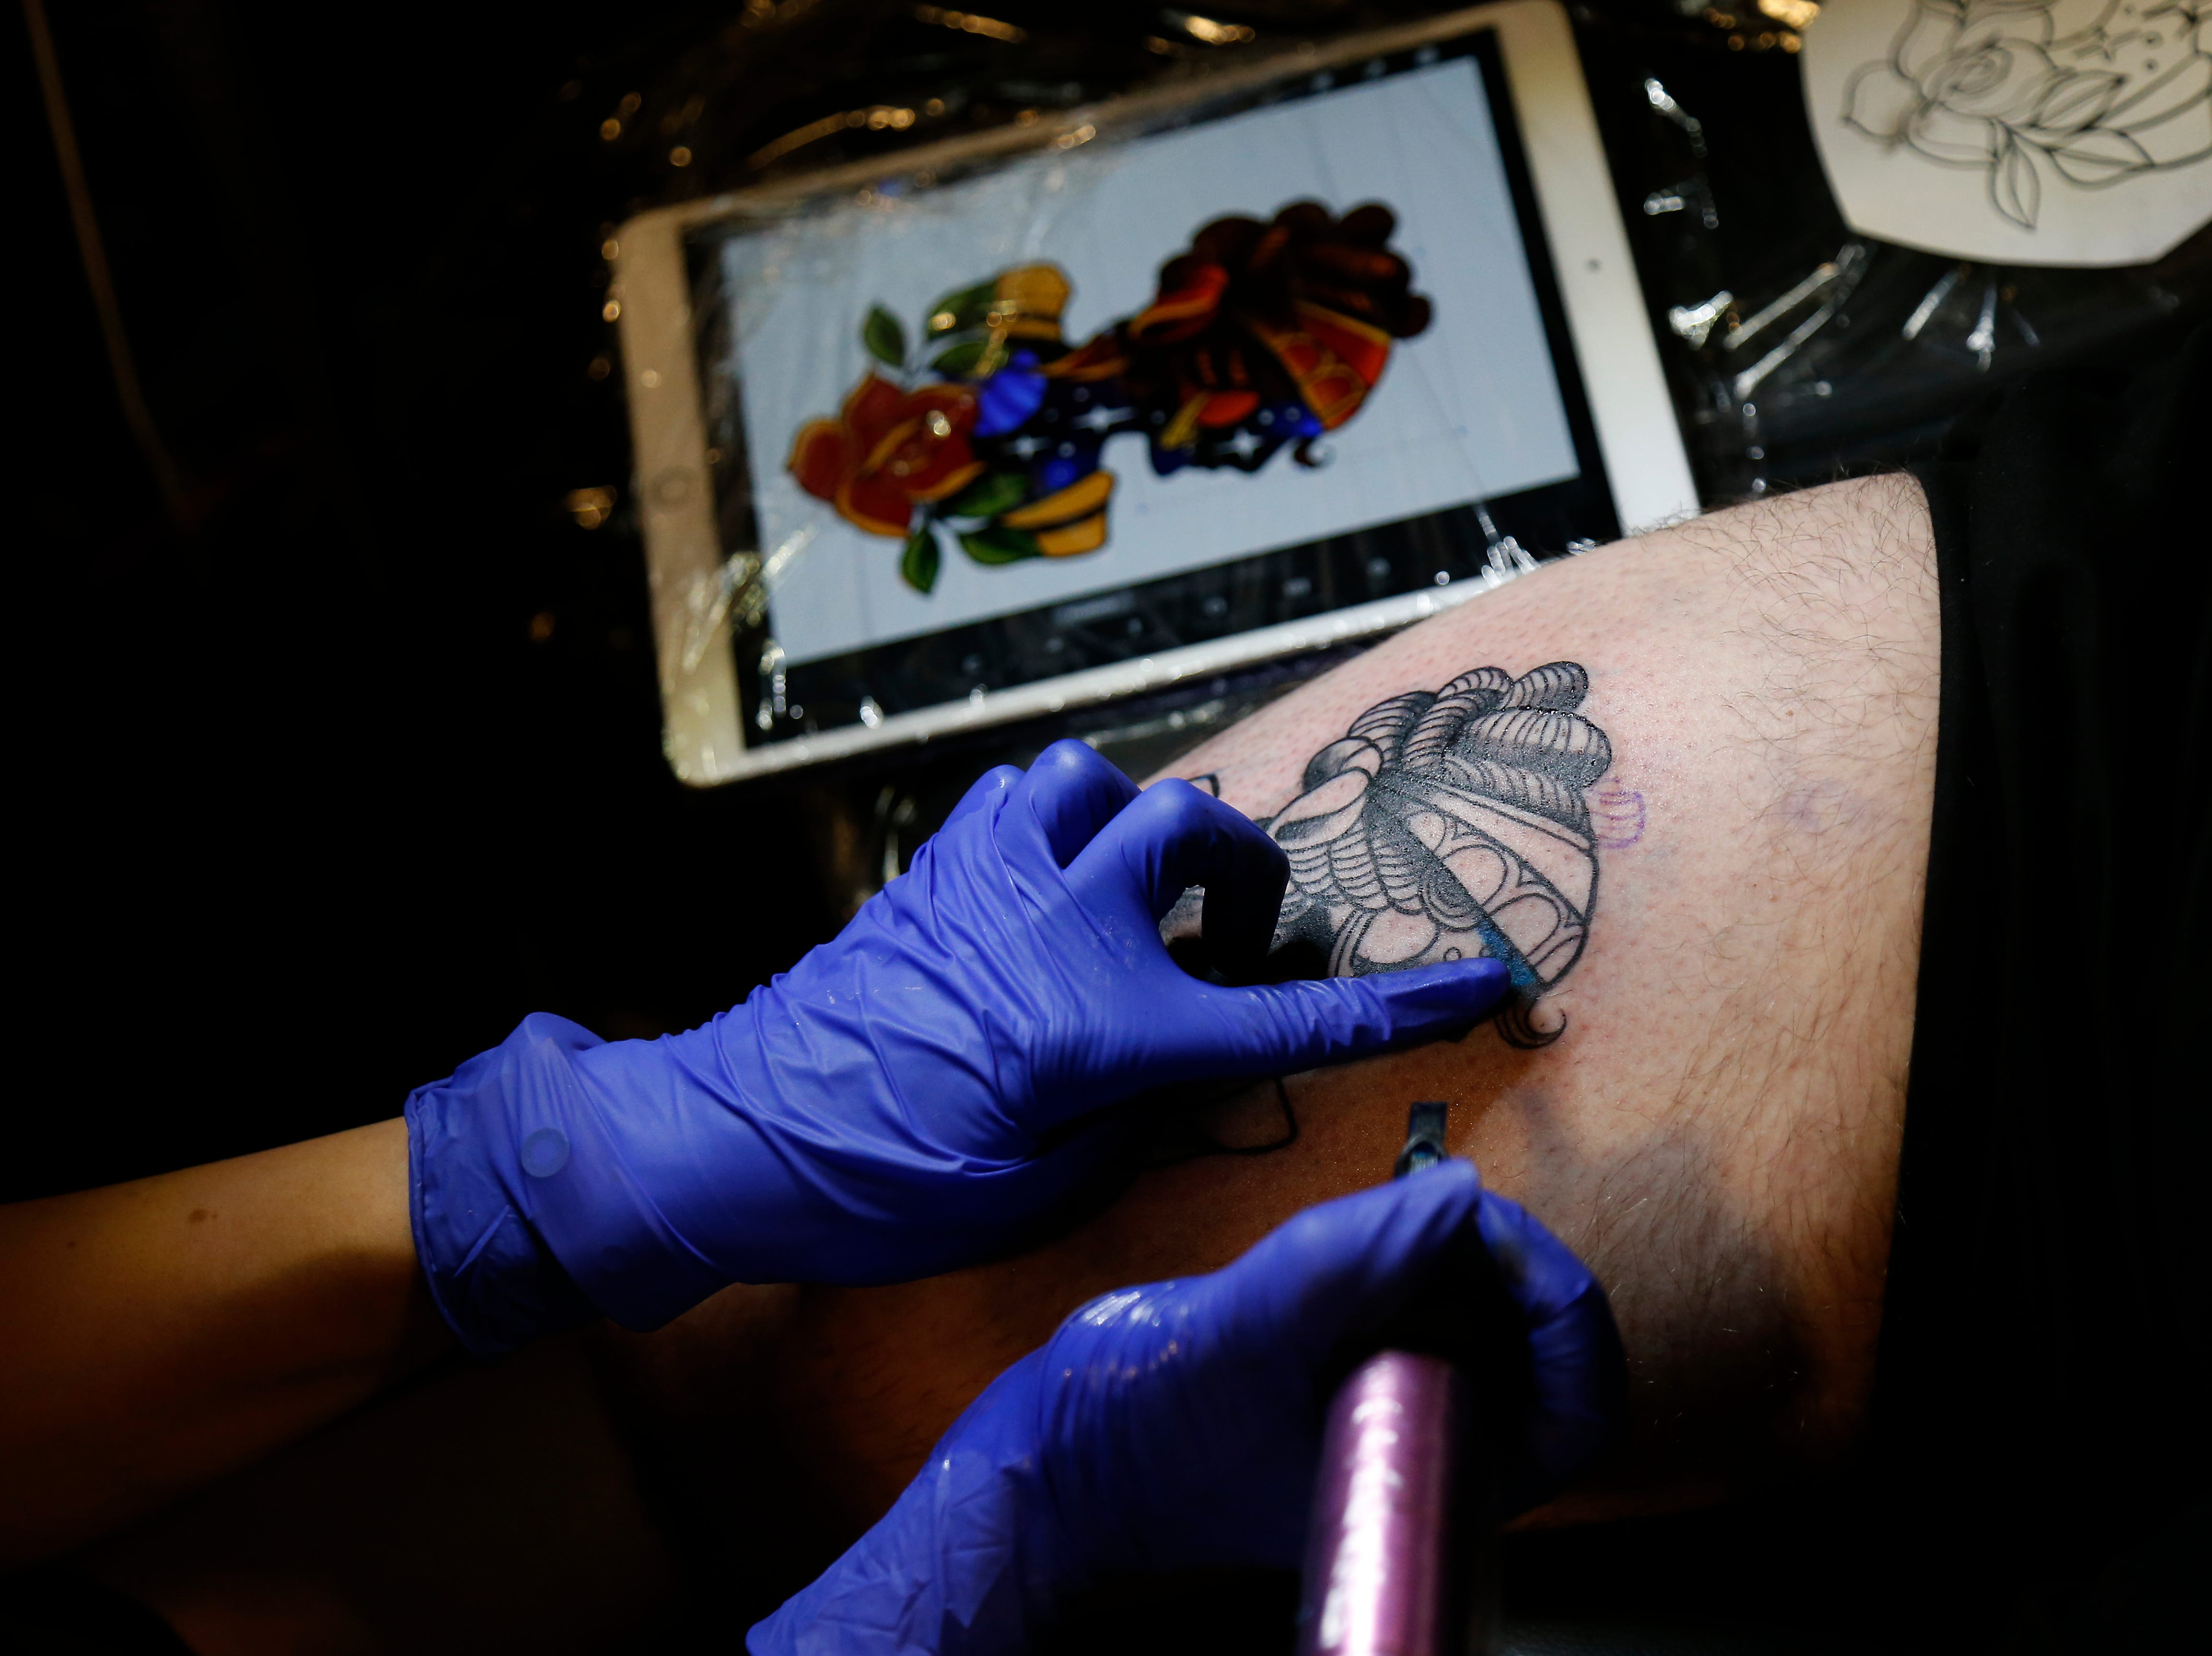 Amy Porter of Thin Line Tattoo in Batavia begins the color portion of a tattoo on Logan Pasqual, of Dayton, Ky., during the Greater Cincinnati Tattoo Arts Convention at the Northern Kentucky Convention Center in Covington, Ky., on Friday, Sept. 7, 2018.